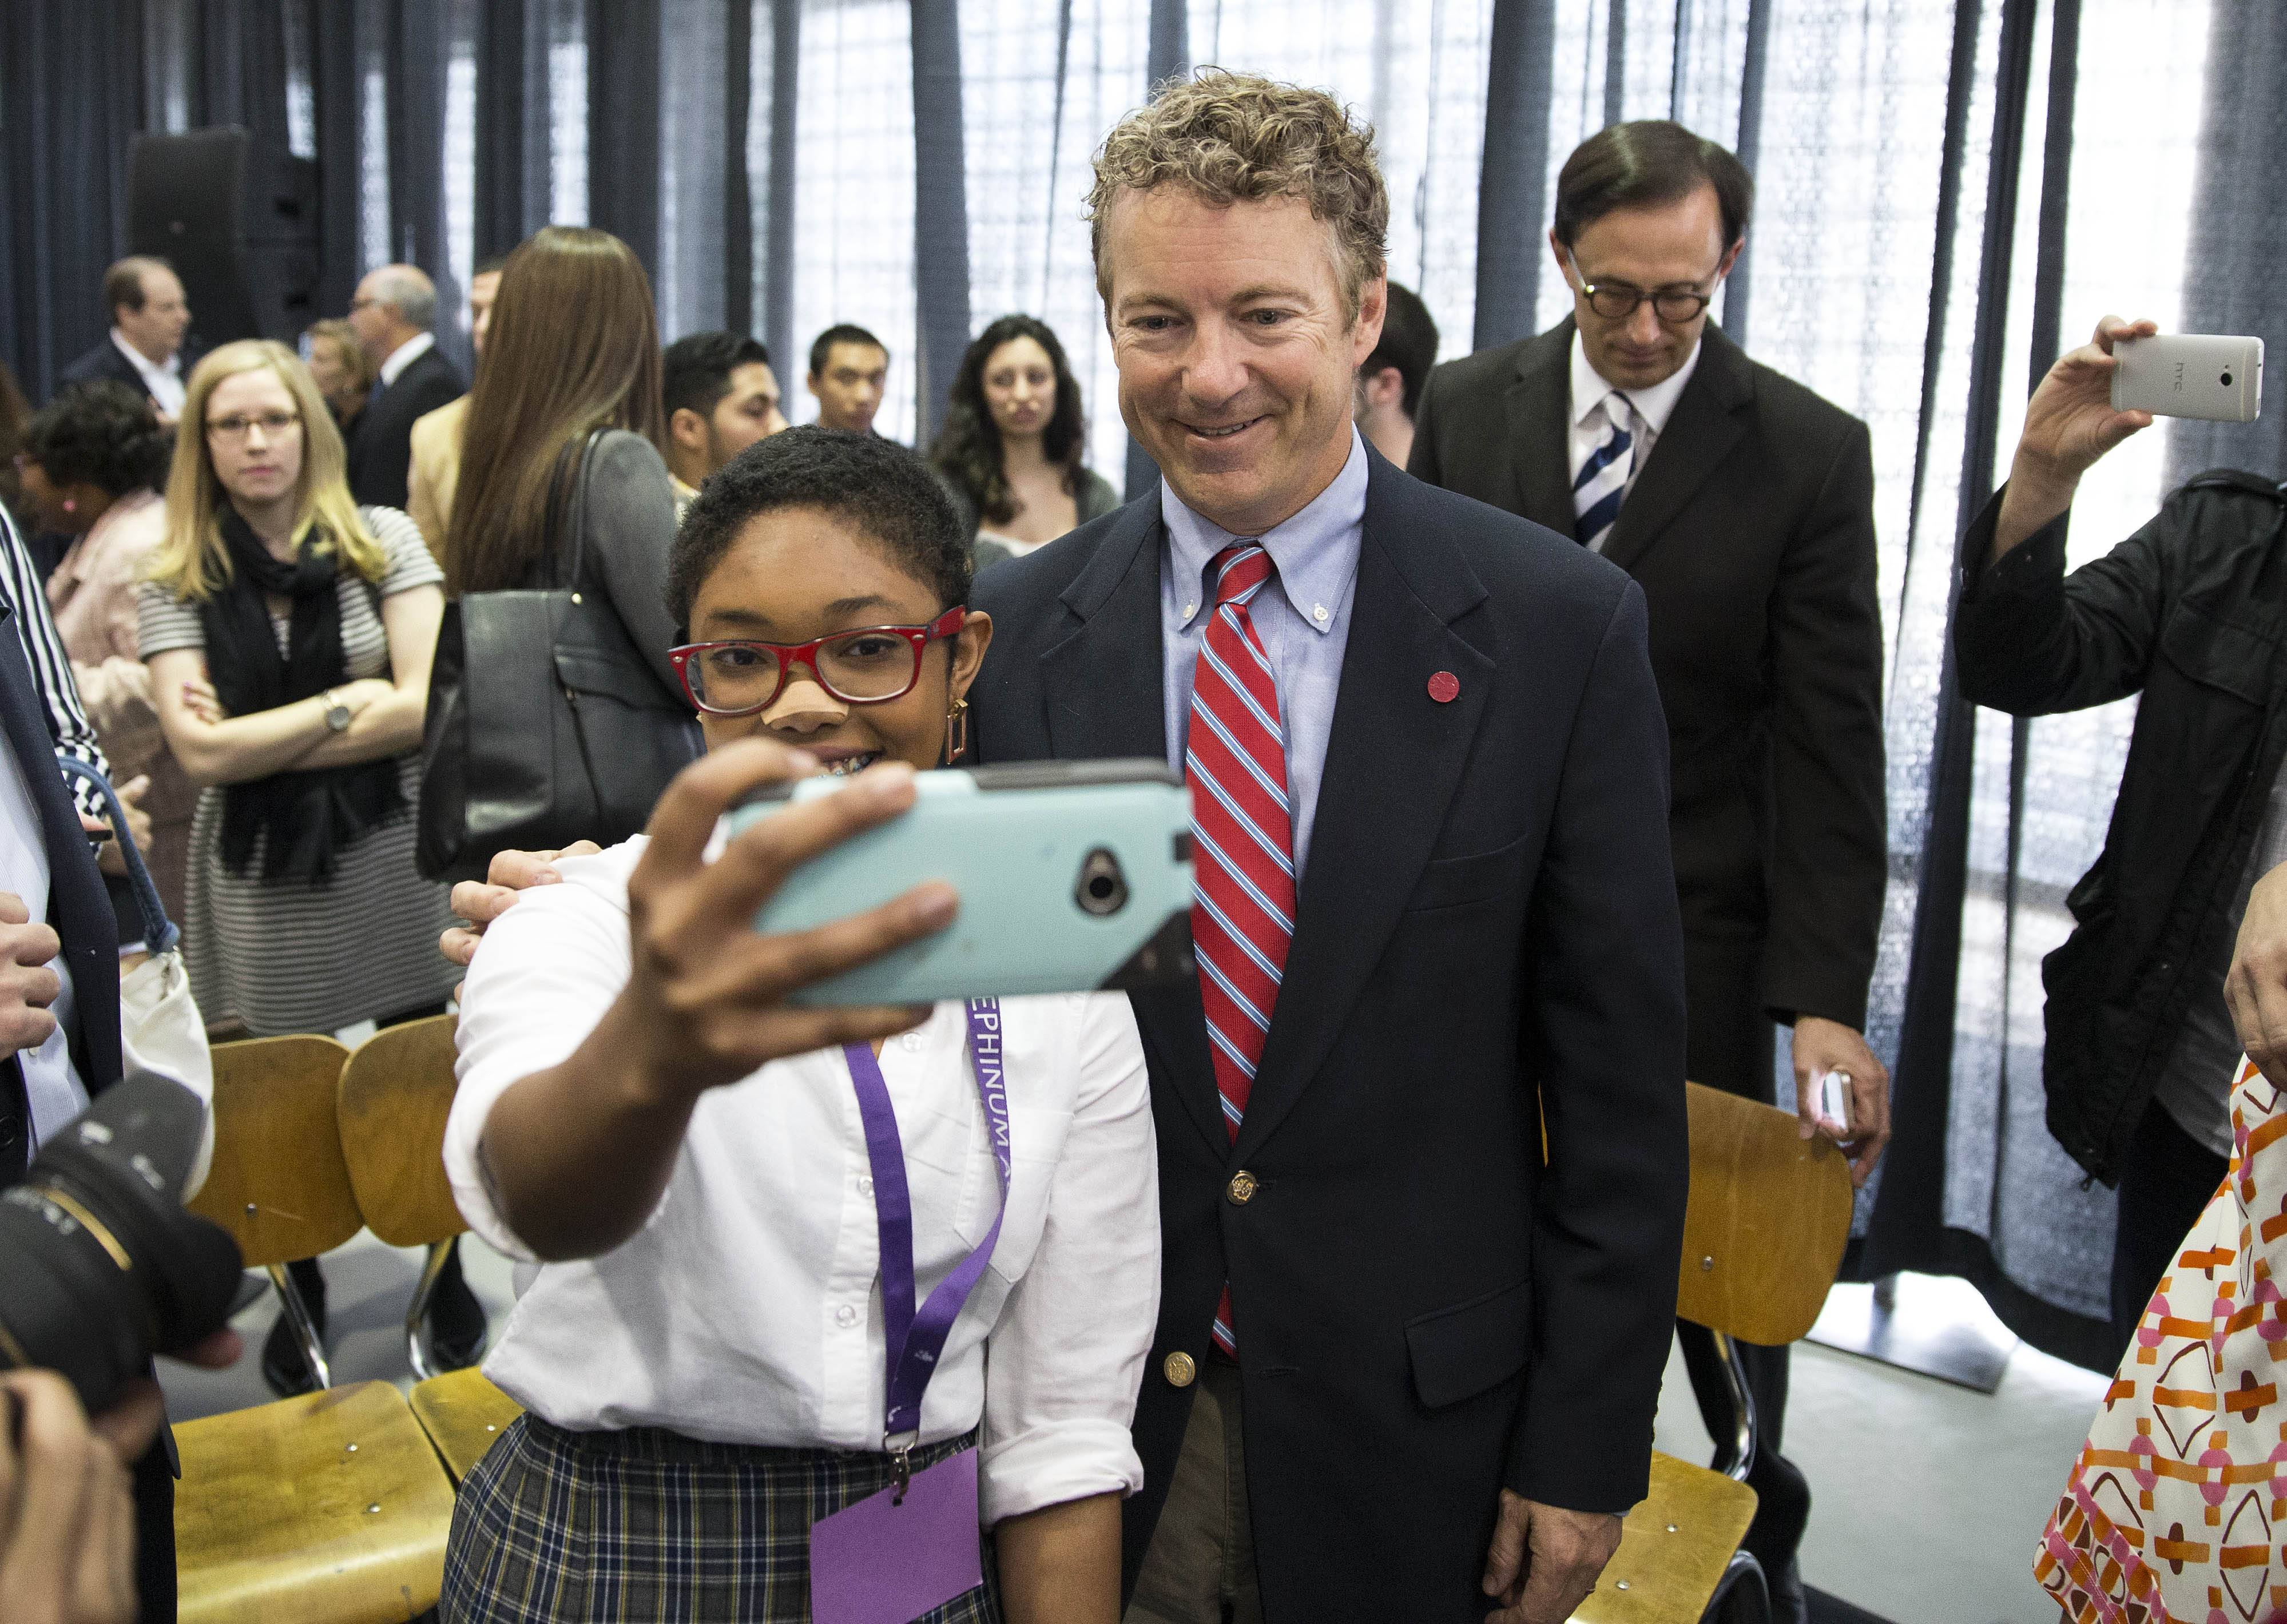 Angelika Noel, 17, poses with Sen. Rand Paul, a Kentucky Republican, during his visit to Josephinum Academy in Chicago to participate in a discussion on school choice on Tuesday.